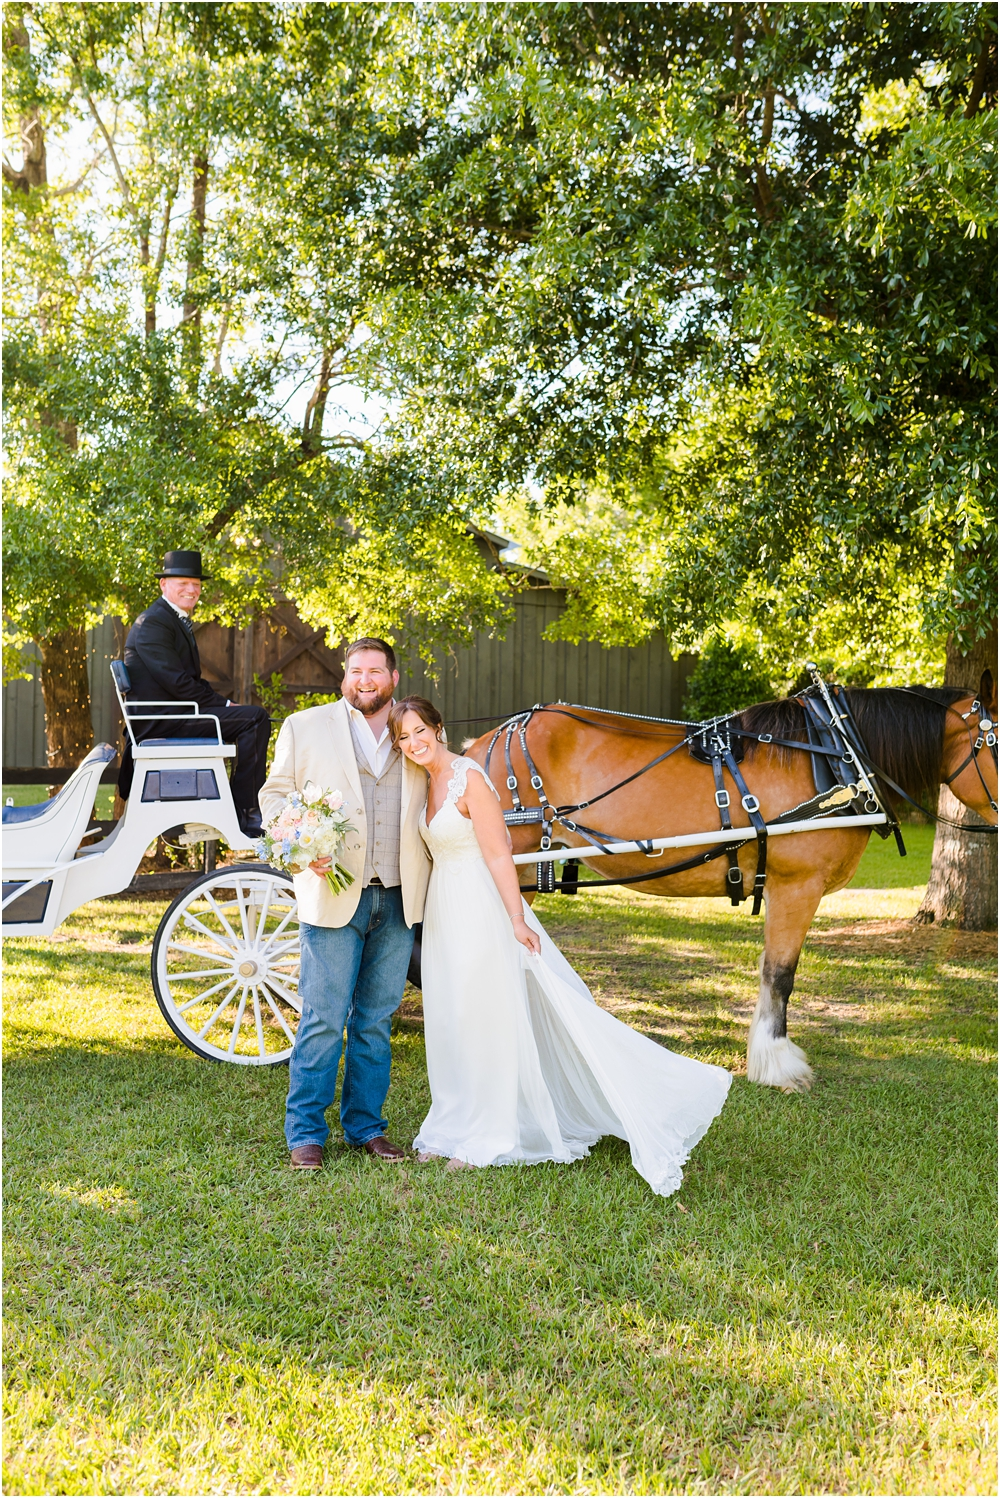 king-southern-lea-farms-vernon-florida-wedding-kiersten-stevenson-photography-(221-of-578).JPG